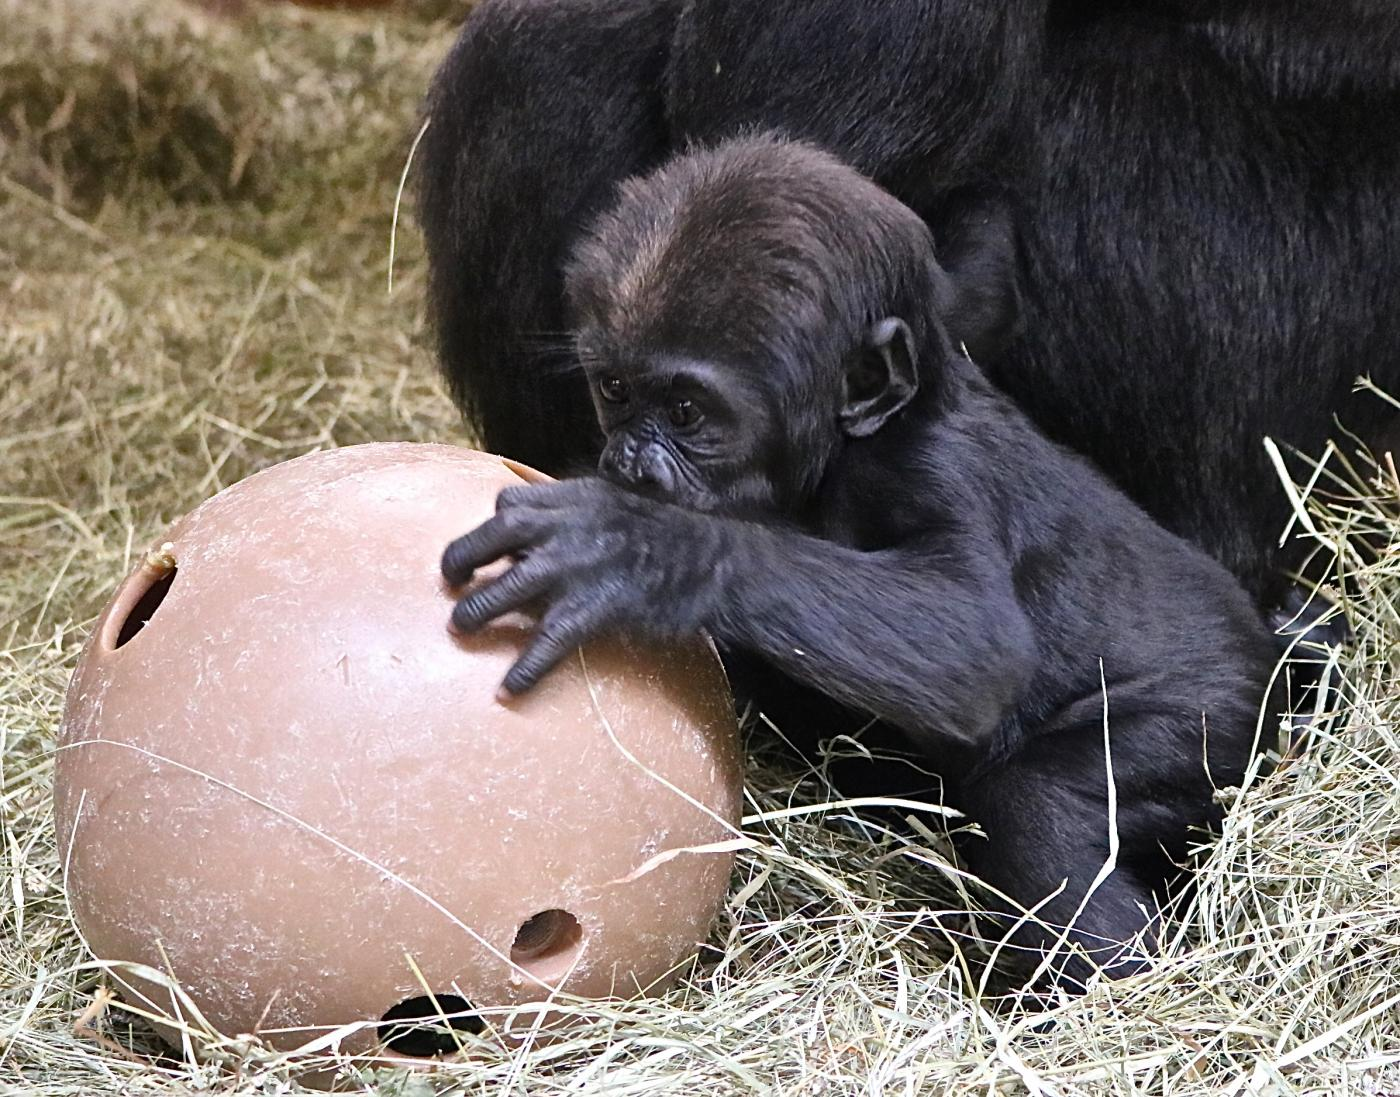 Western lowland gorilla Moke playing with an enrichment puzzle feeder.